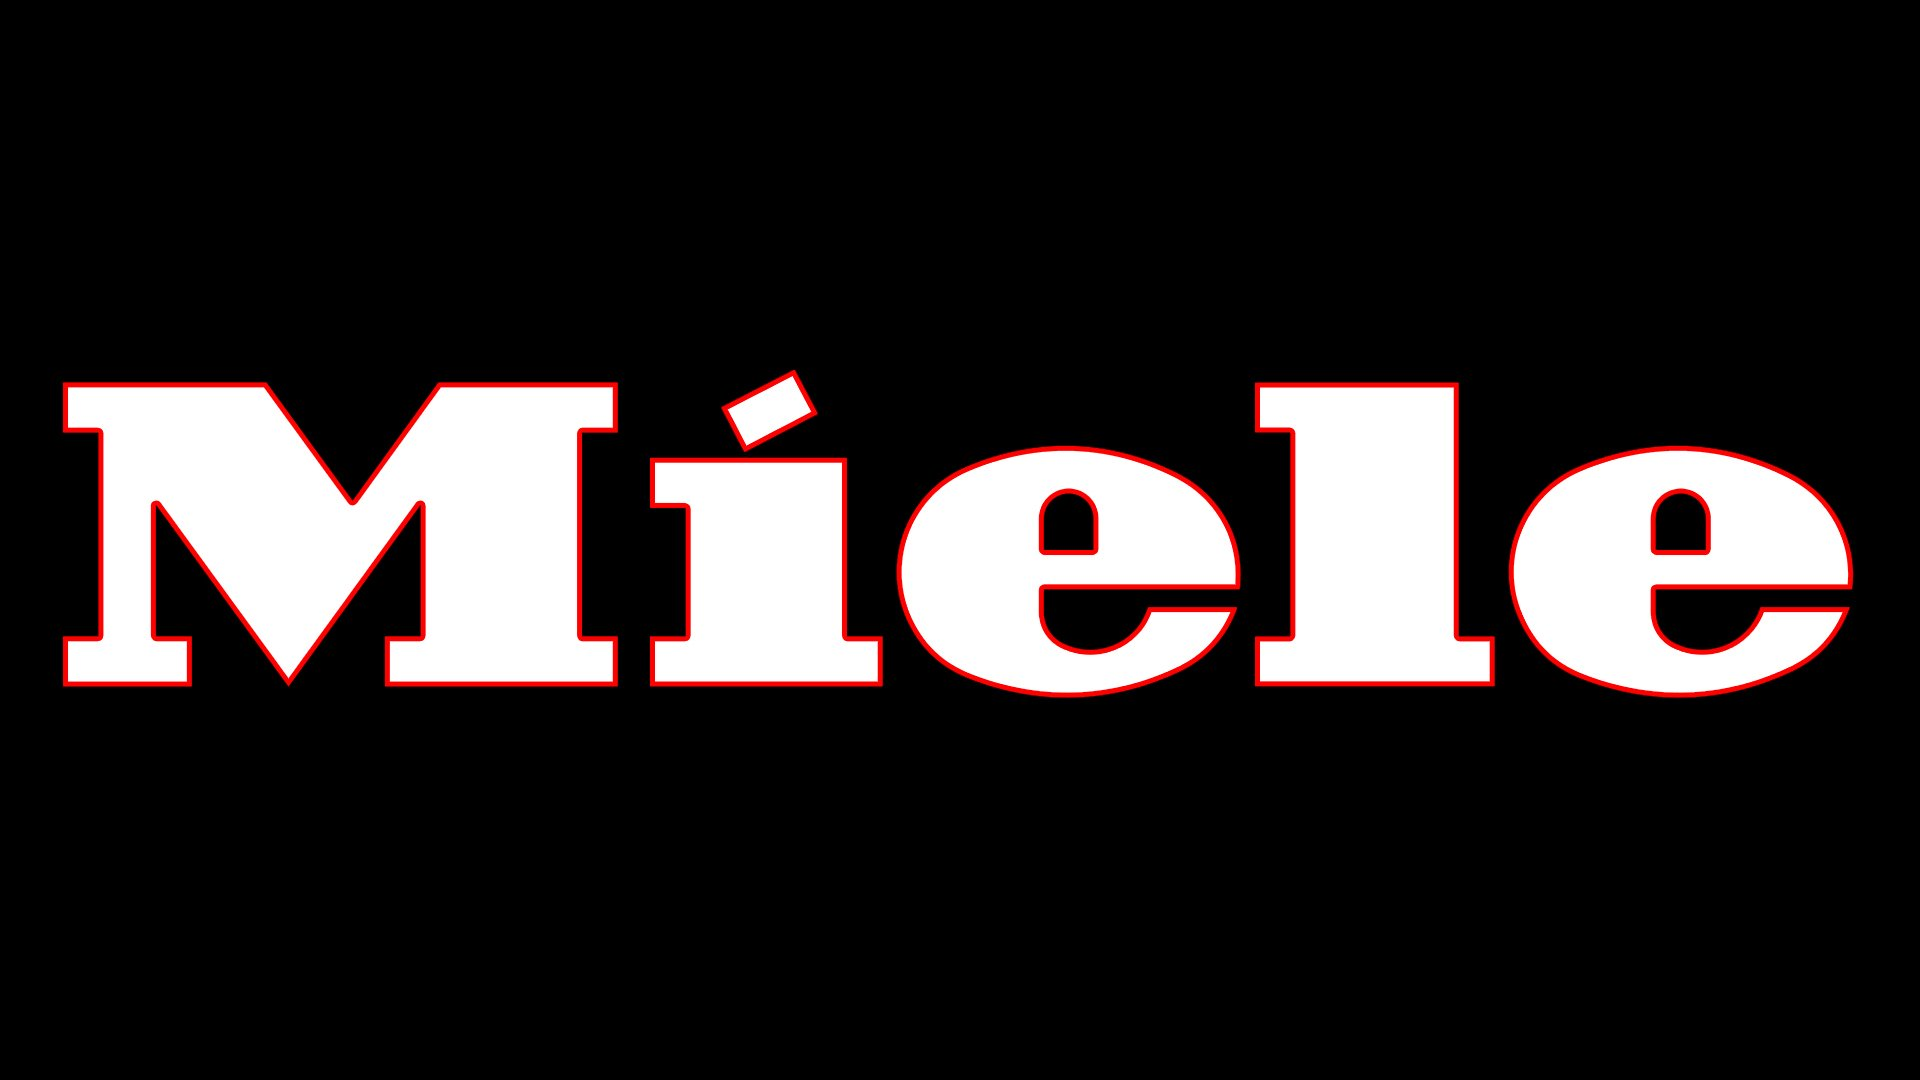 miele logo  miele symbol  meaning  history and evolution